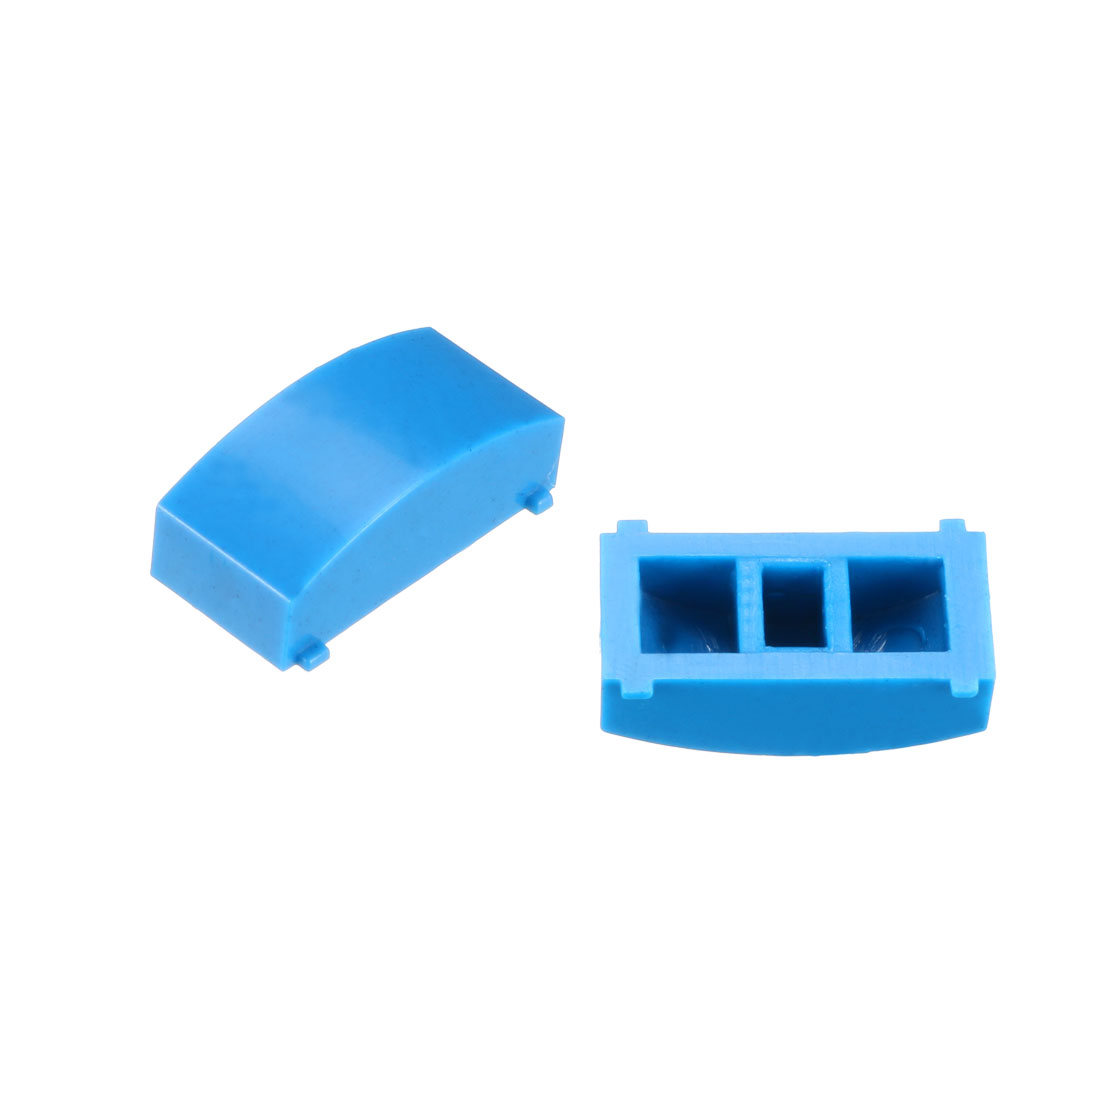 50Pcs 12.4x4.5mm Tact Switch Caps Cover Blue for 8x8 Latching Tactile Switch